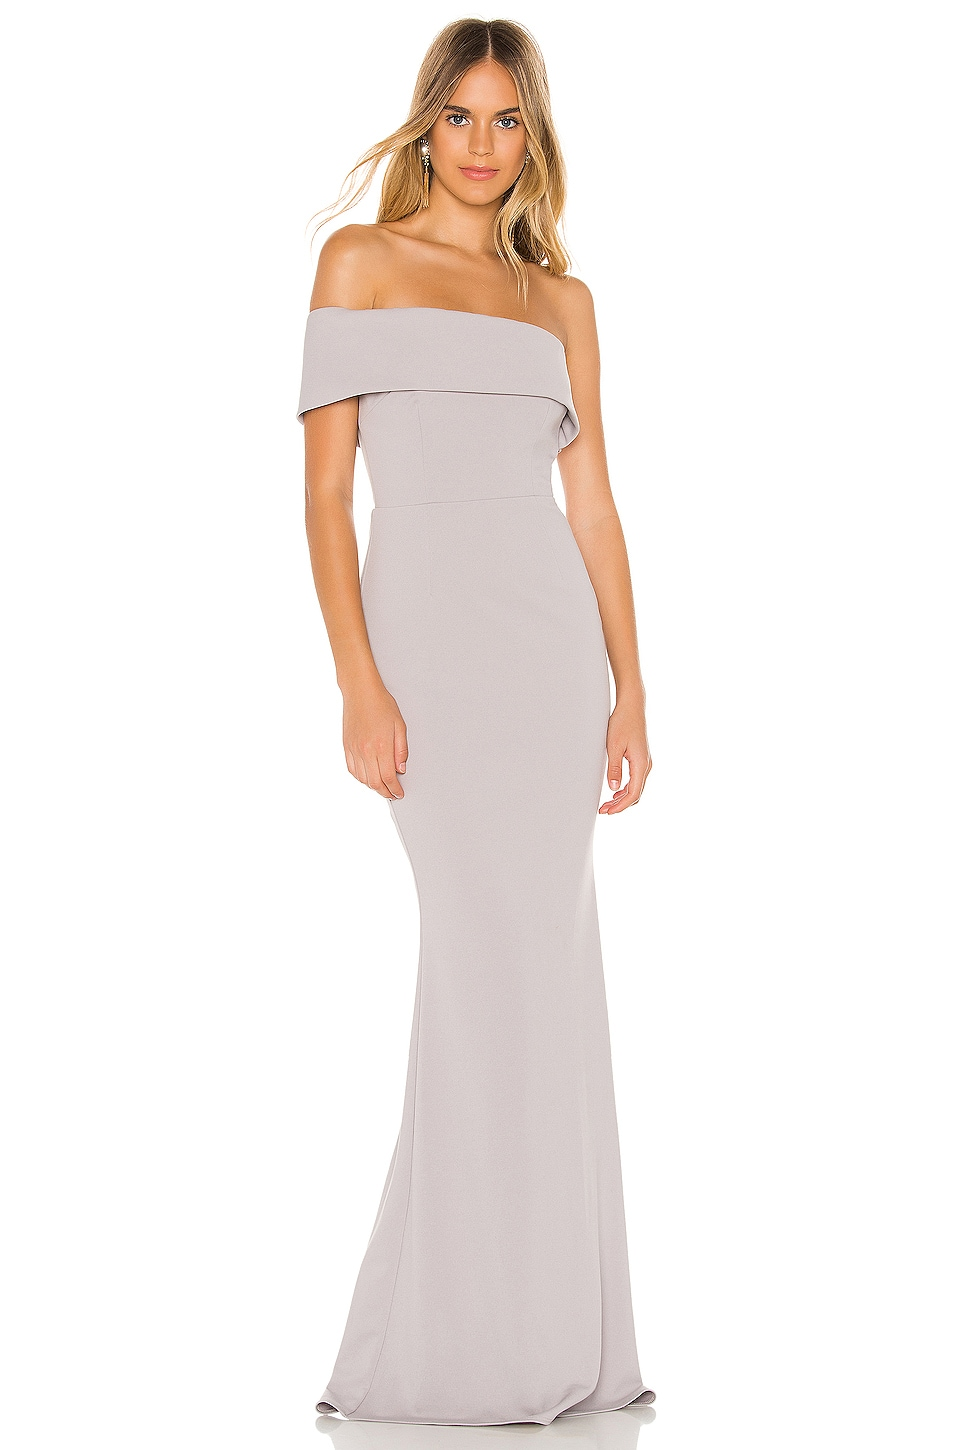 Katie May Titan Gown in Dove